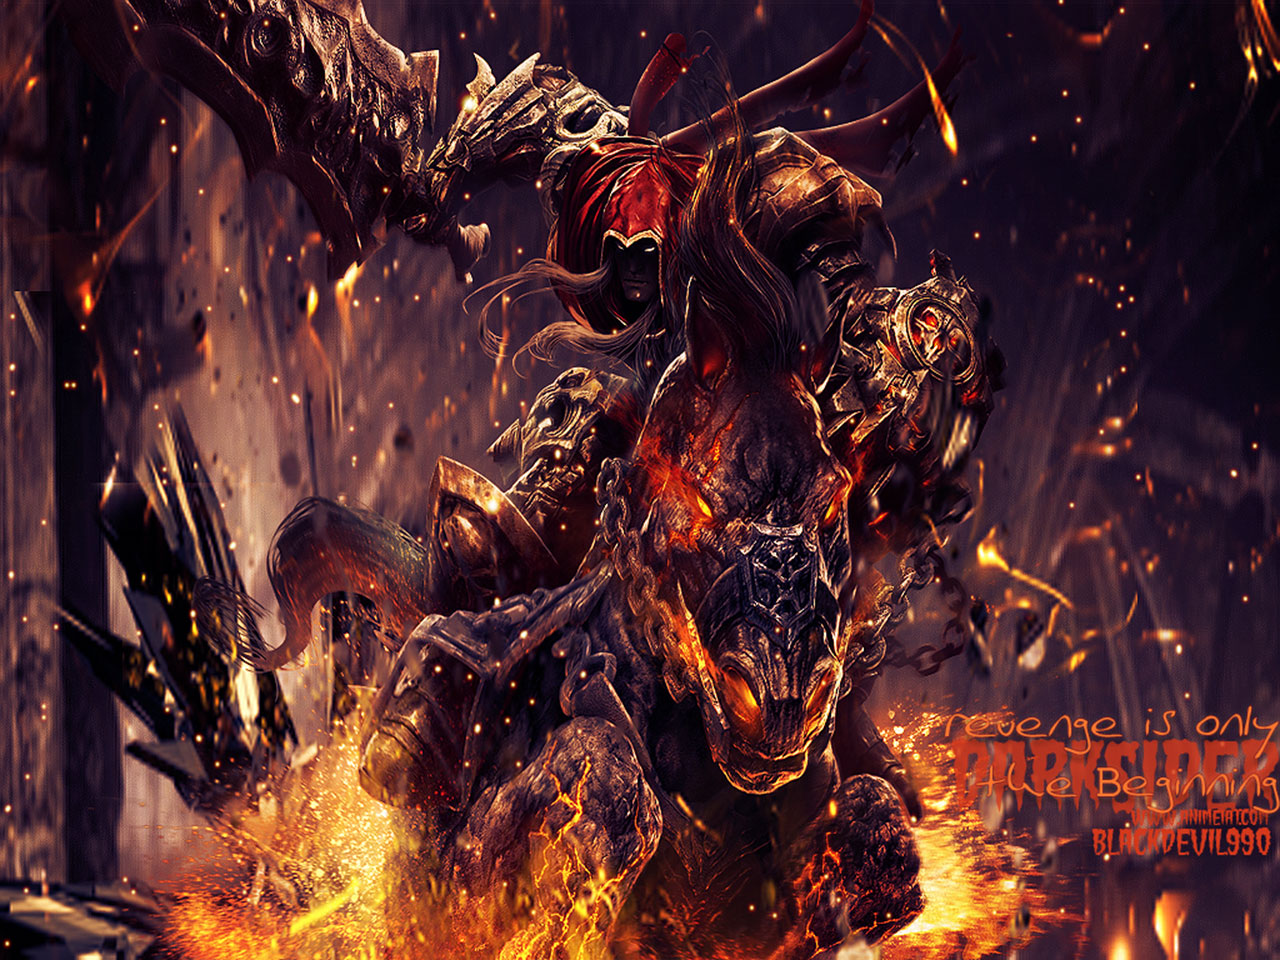 Games Wallpapers   Darksiders 1280x960 wallpaper 1280x960